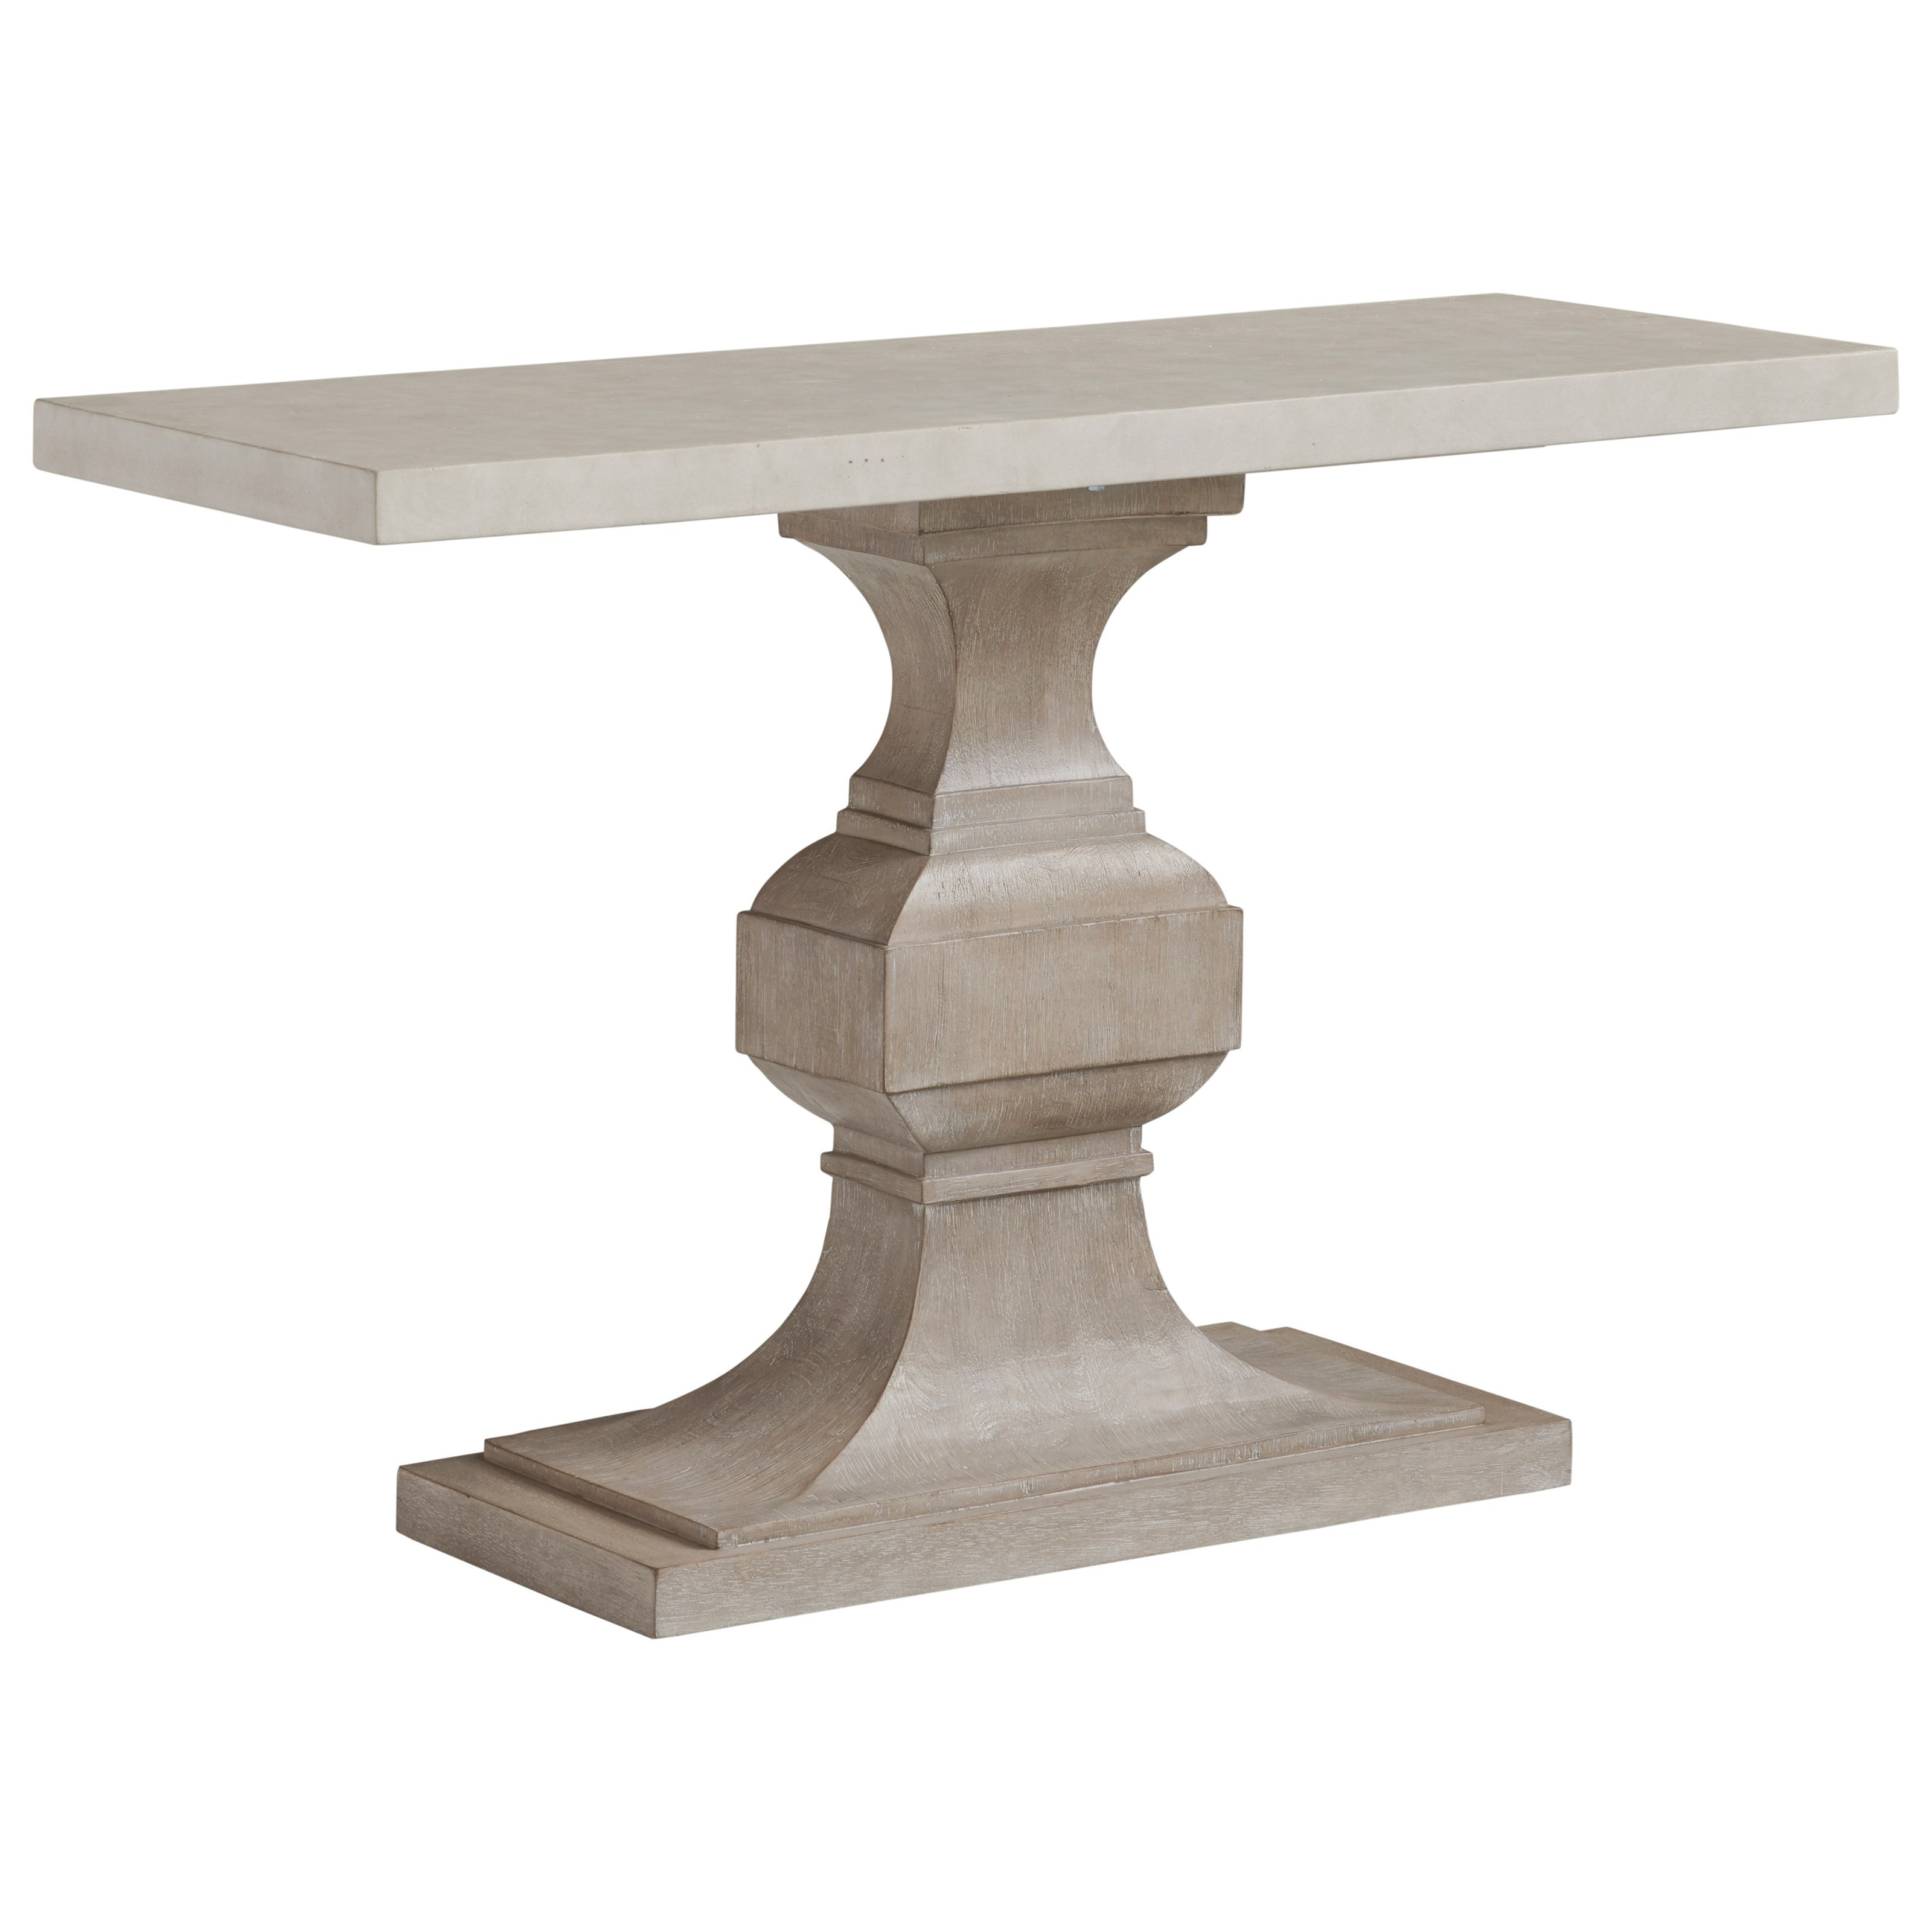 Malibu Tivoli Console by Barclay Butera at Baer's Furniture